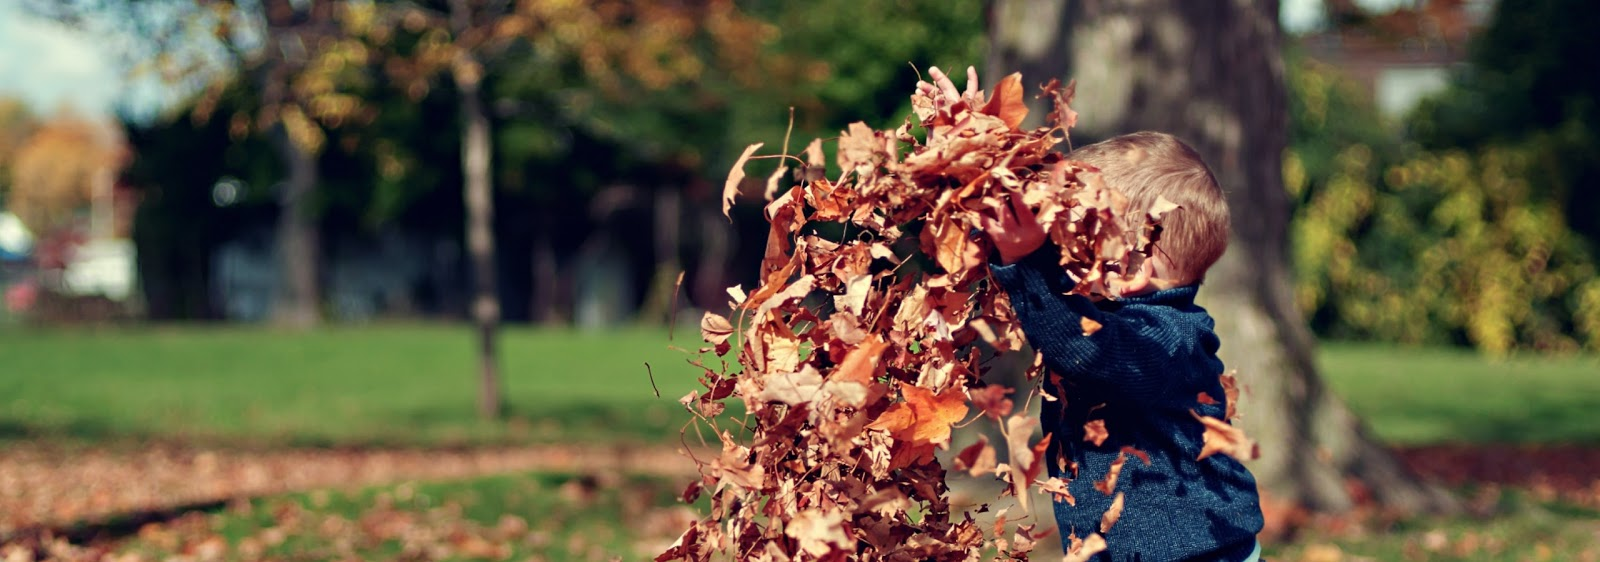 a young boy playing in a pile of dead leaves, the sun is shining and there are trees in the background.